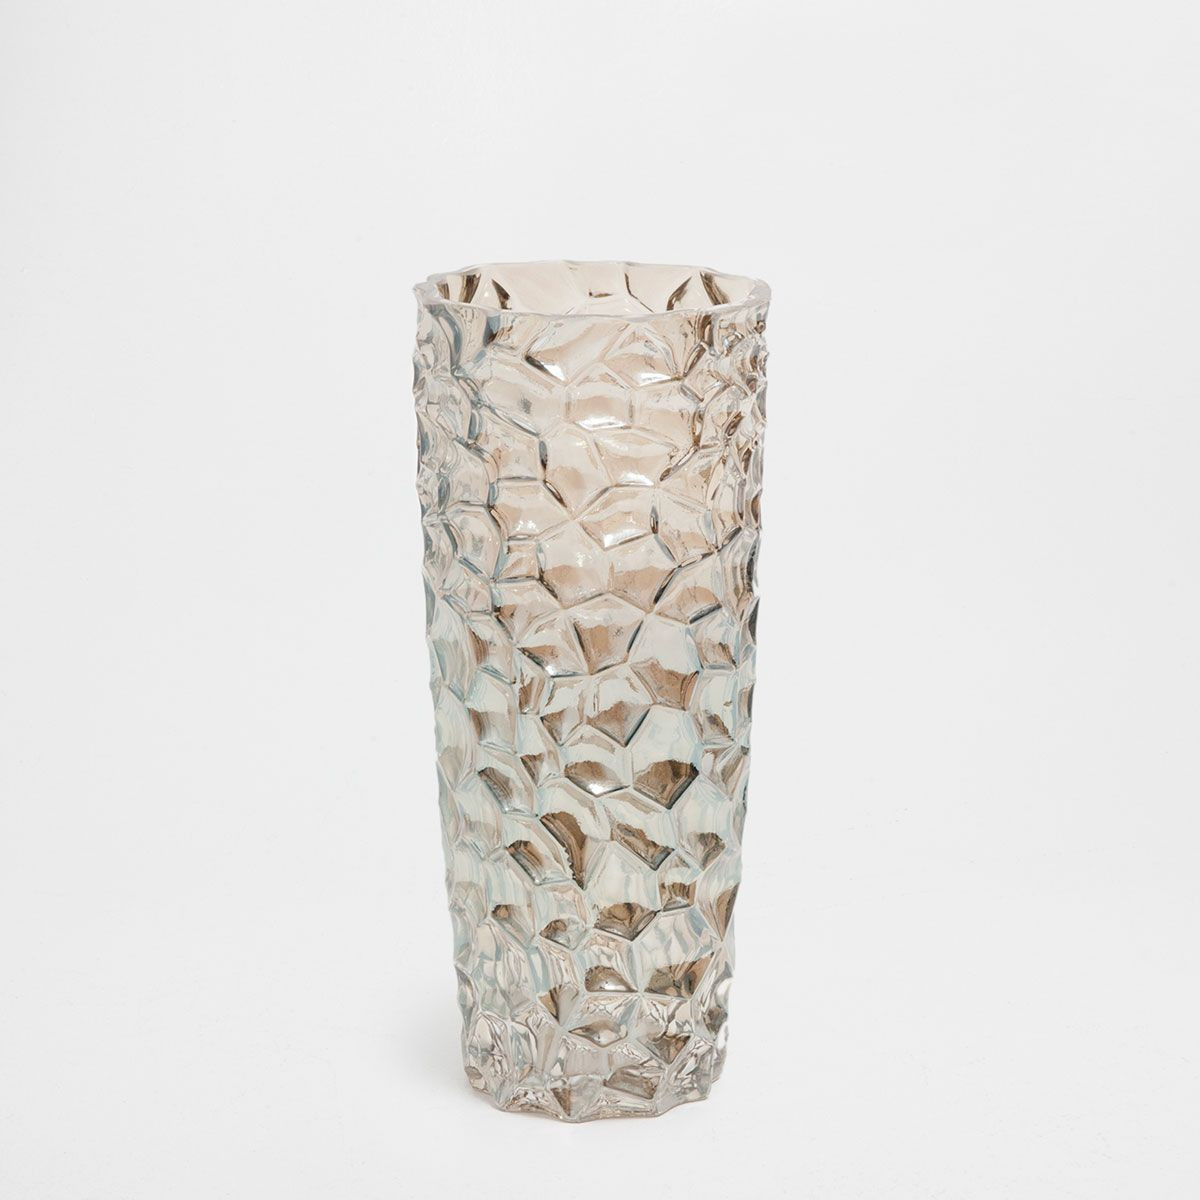 cylinder vase set of mother of pearl effect glass vase for image 1 of the product mother of pearl effect glass vase